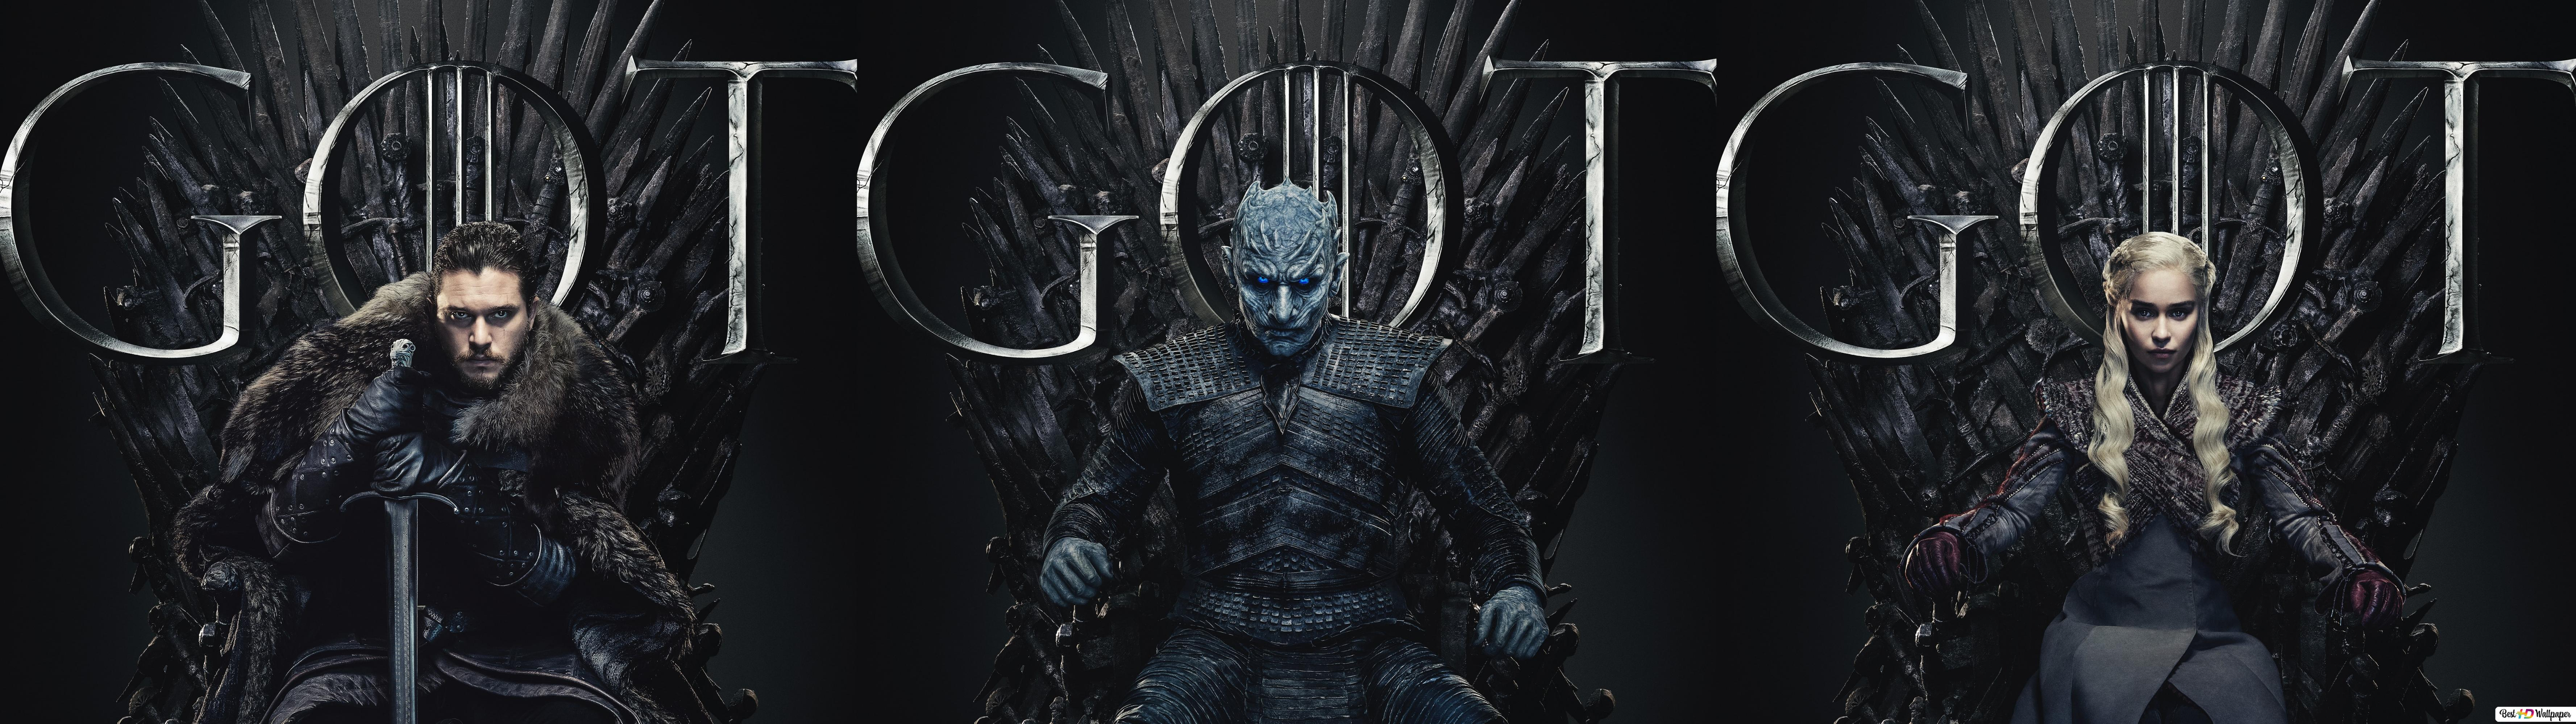 Game Of Thrones Season 8 Hd Wallpaper Download